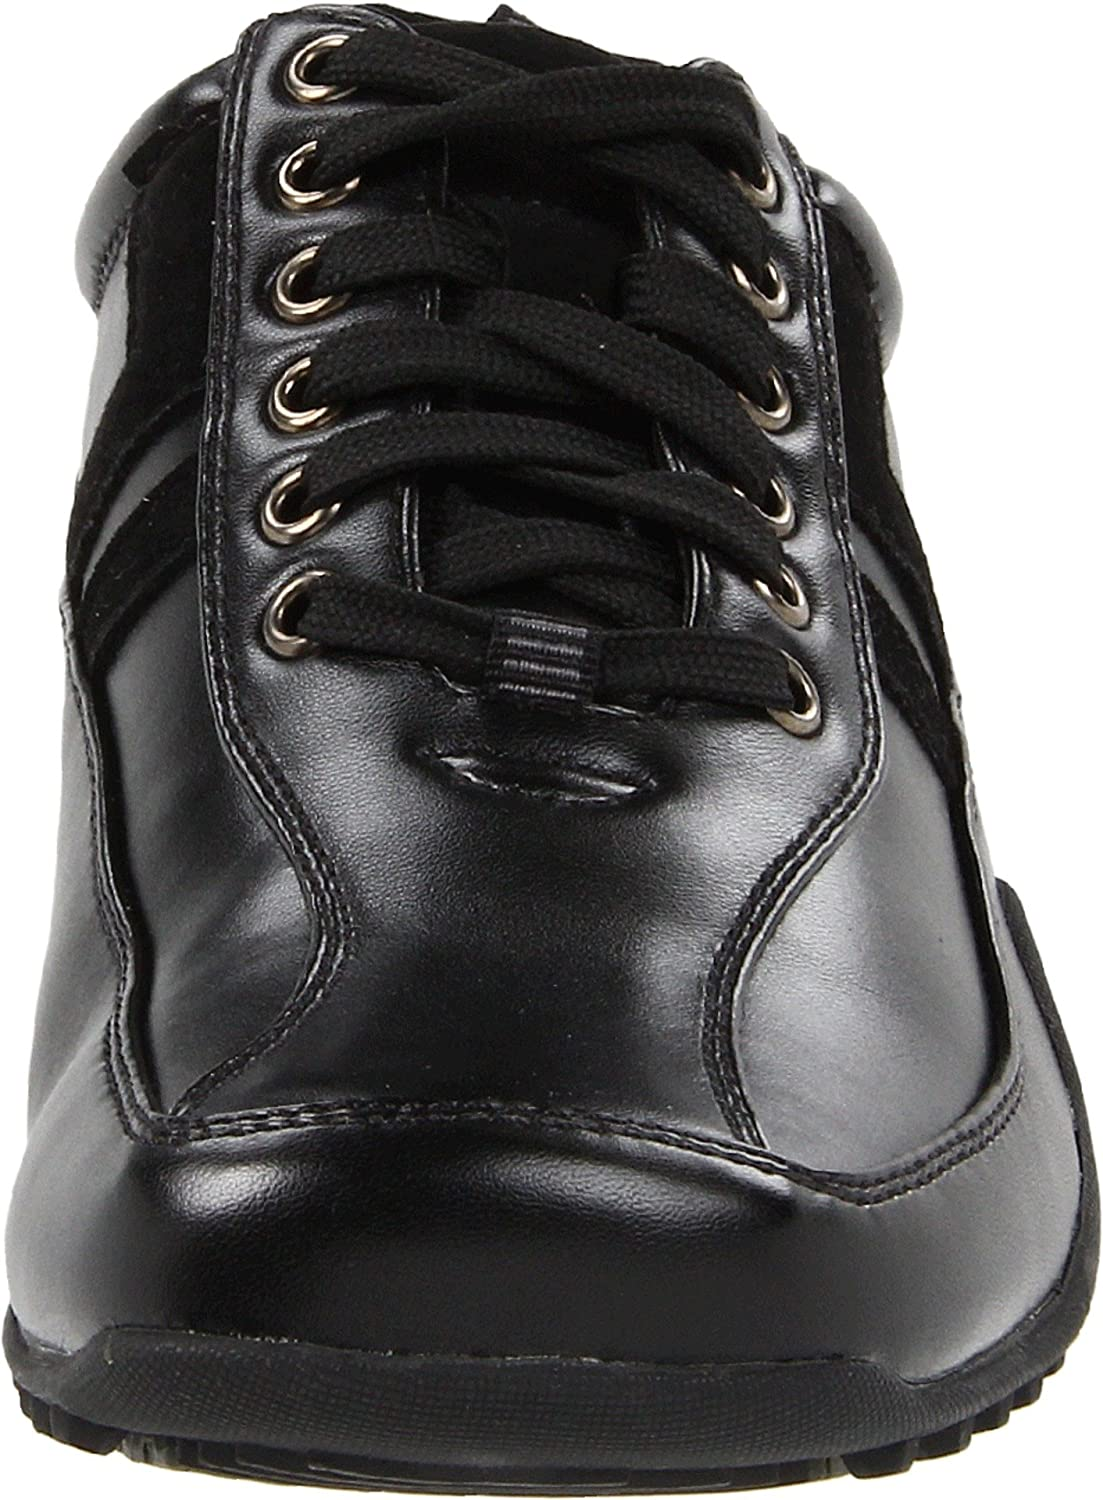 visit cheap price Deer Stags Donald Men's Oxford ... Work Shoes outlet sast low shipping online cheap sale extremely comfortable sale online sgCIM